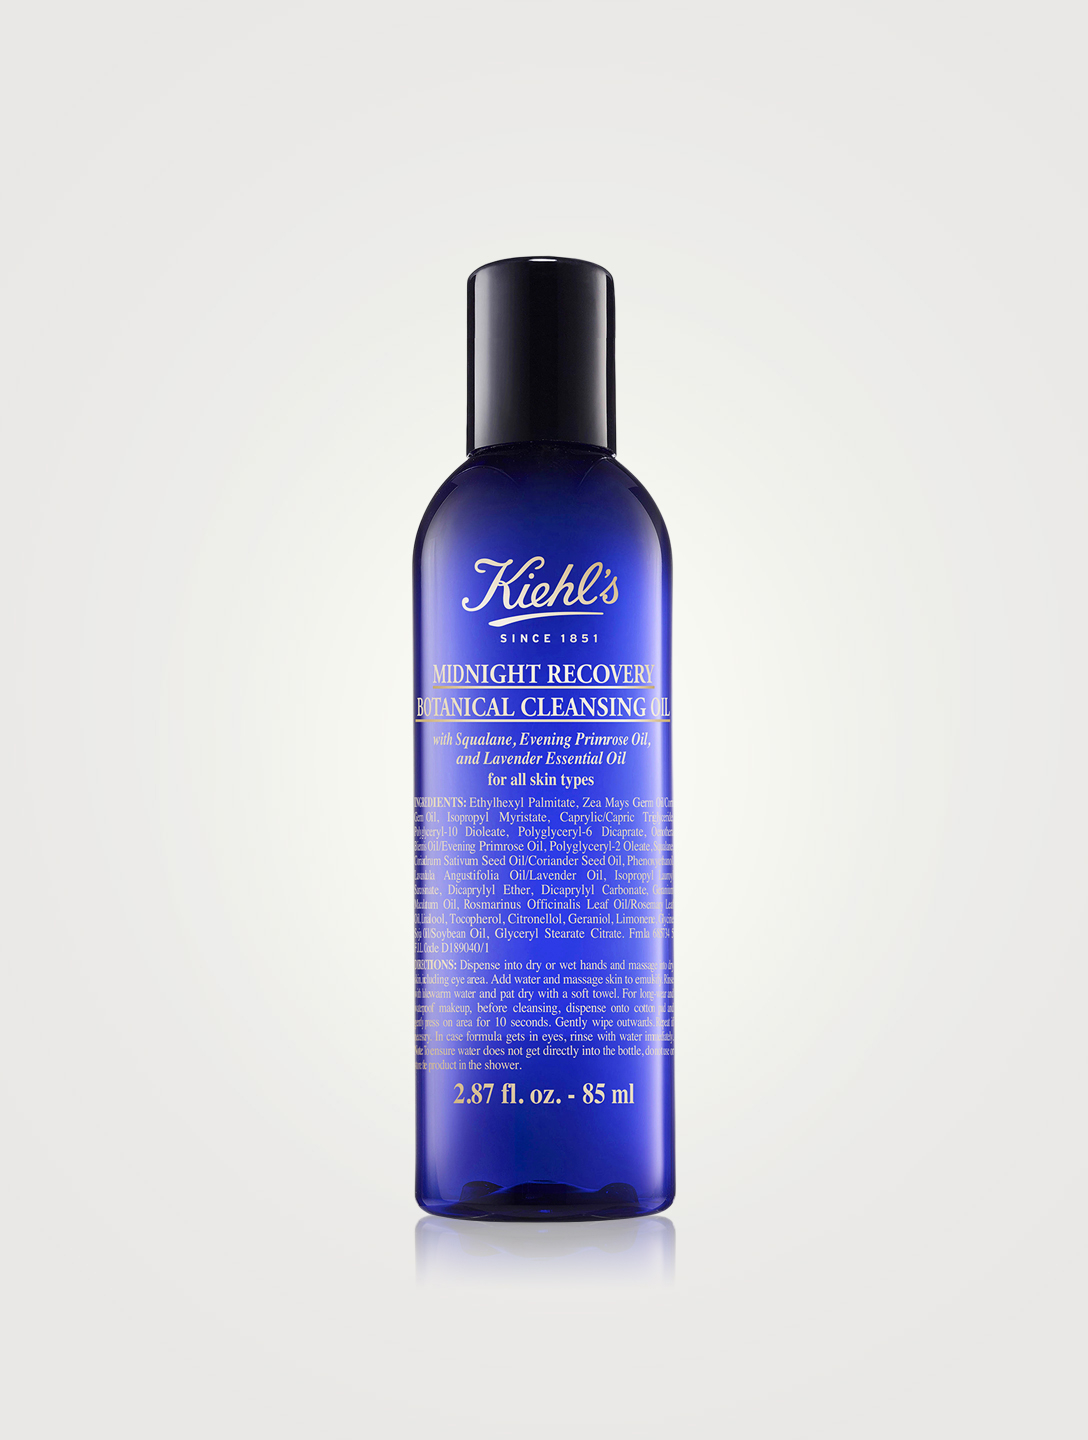 KIEHL'S Midnight Recovery Botanical Cleansing Oil Beauty